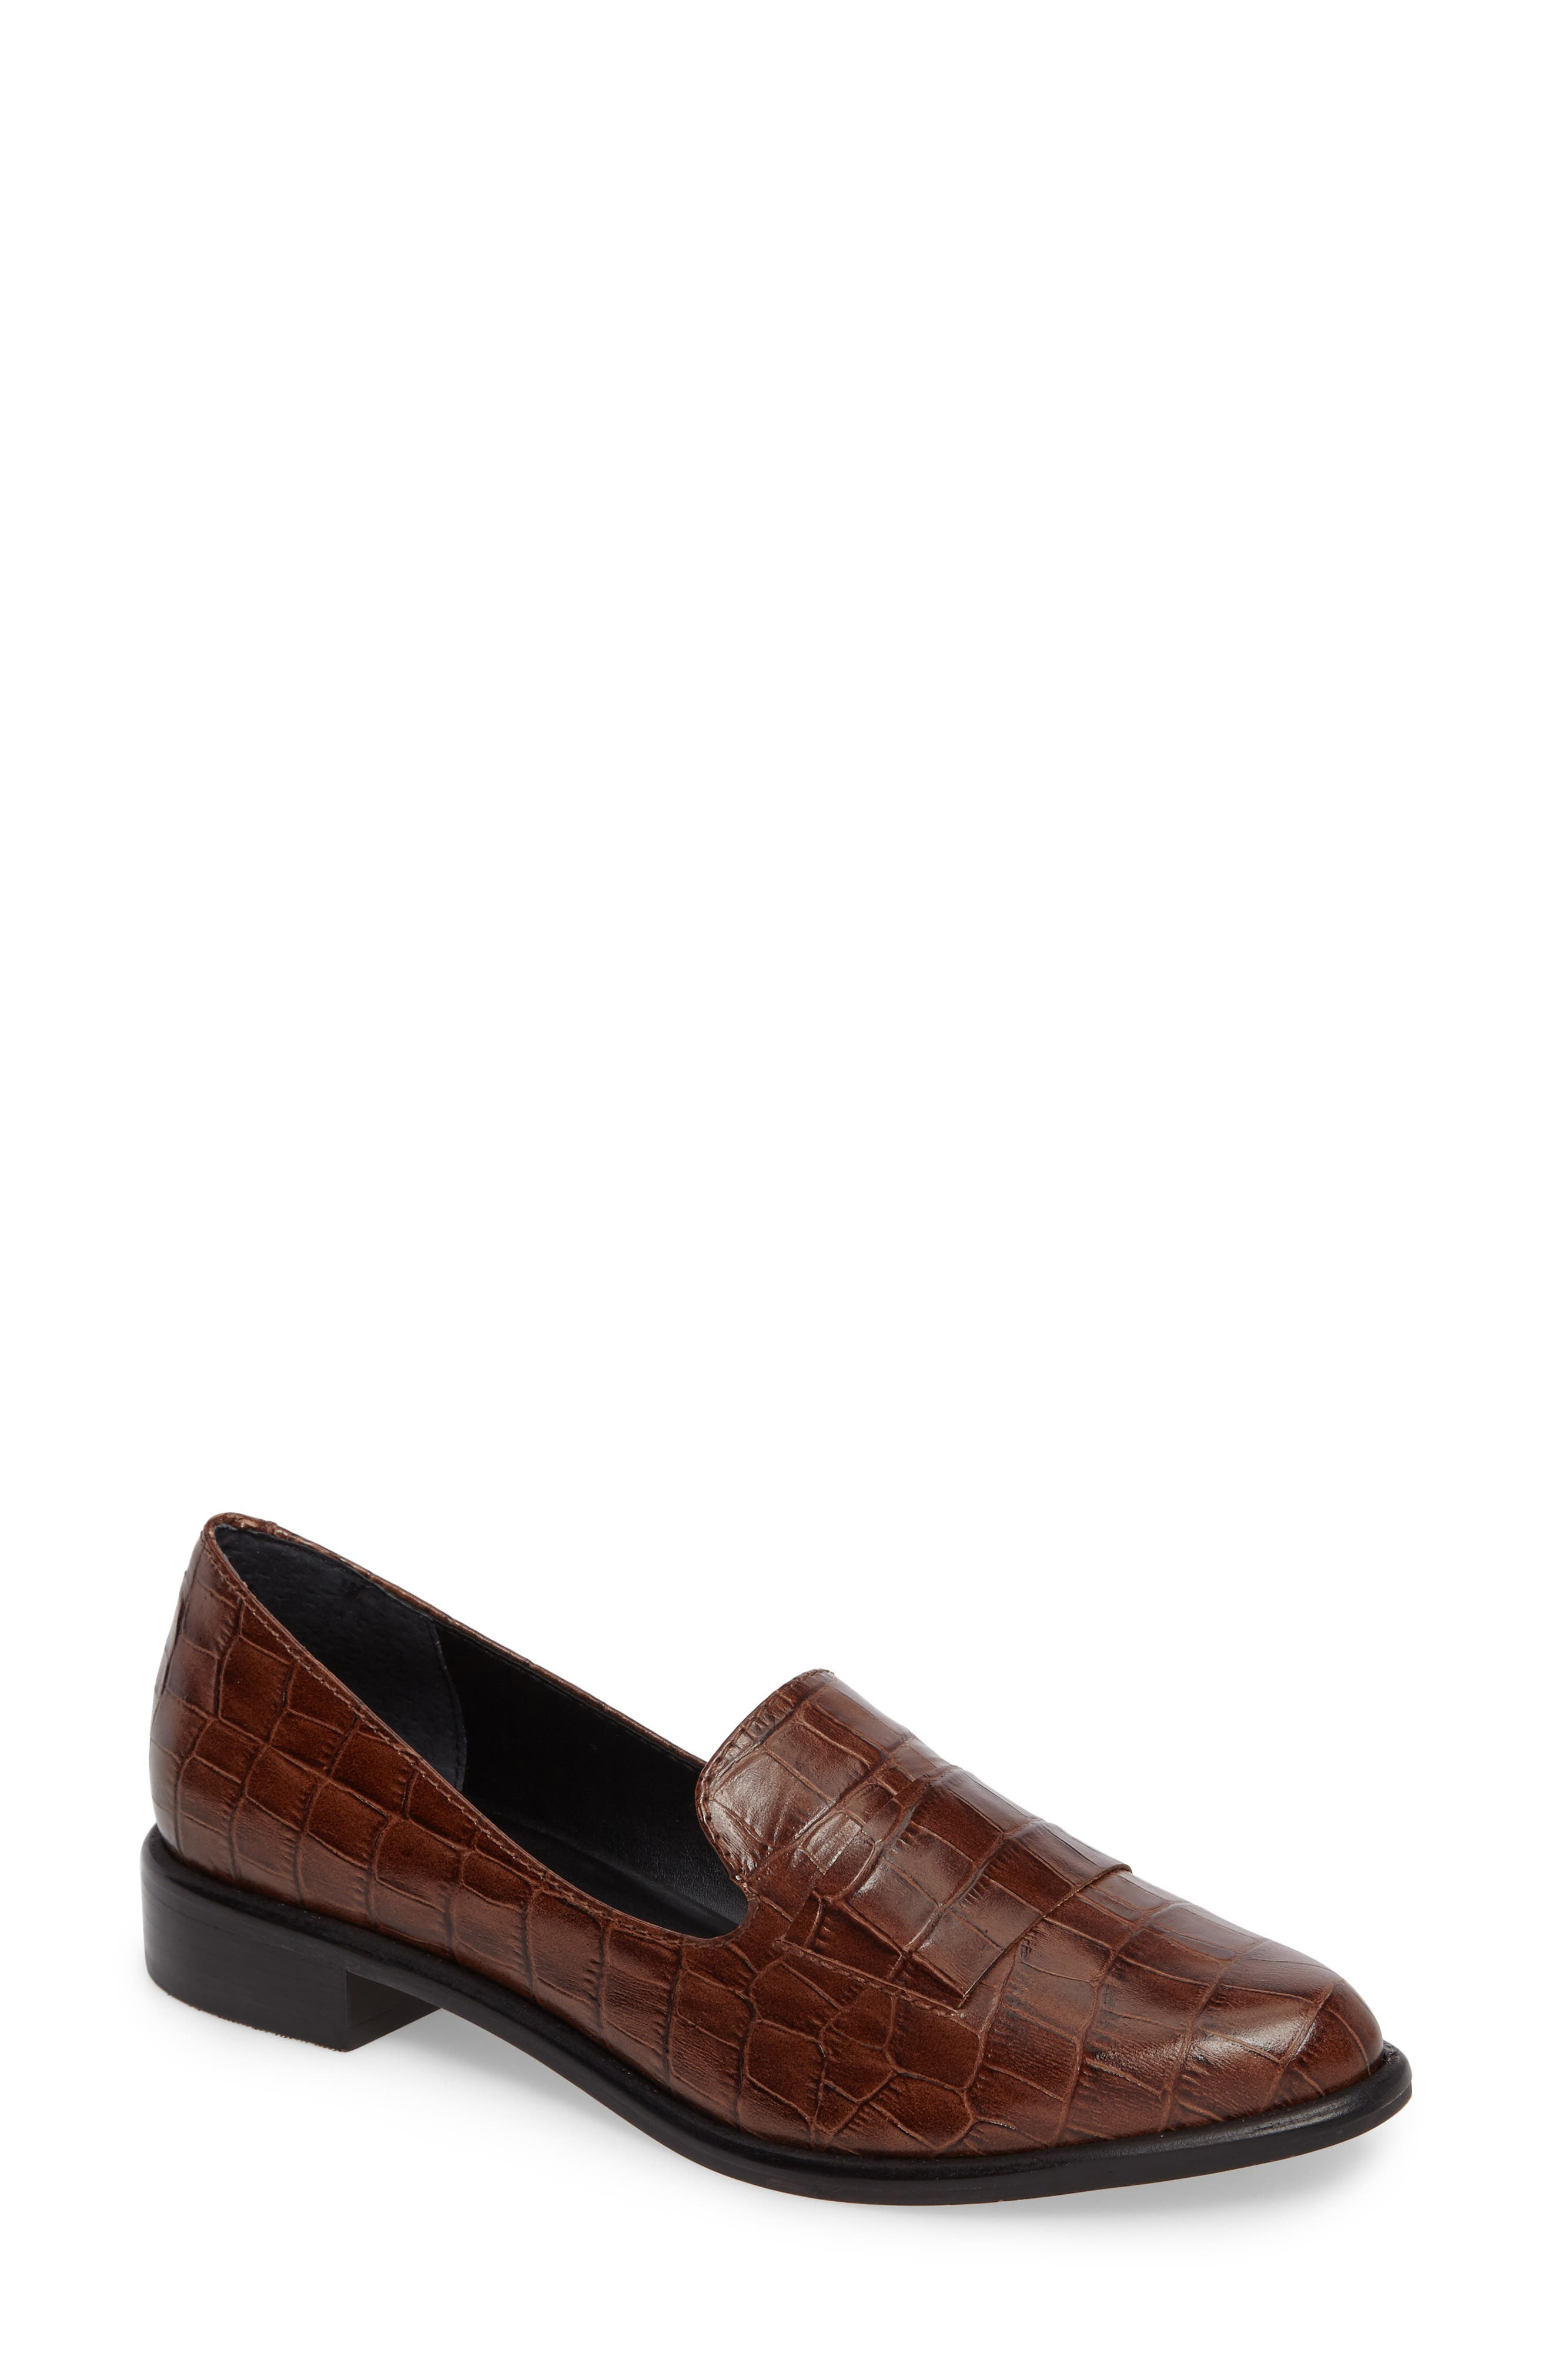 M4D3 'Ocean' Flat Loafer,                         Main,                         color, Whiskey Croc Leather